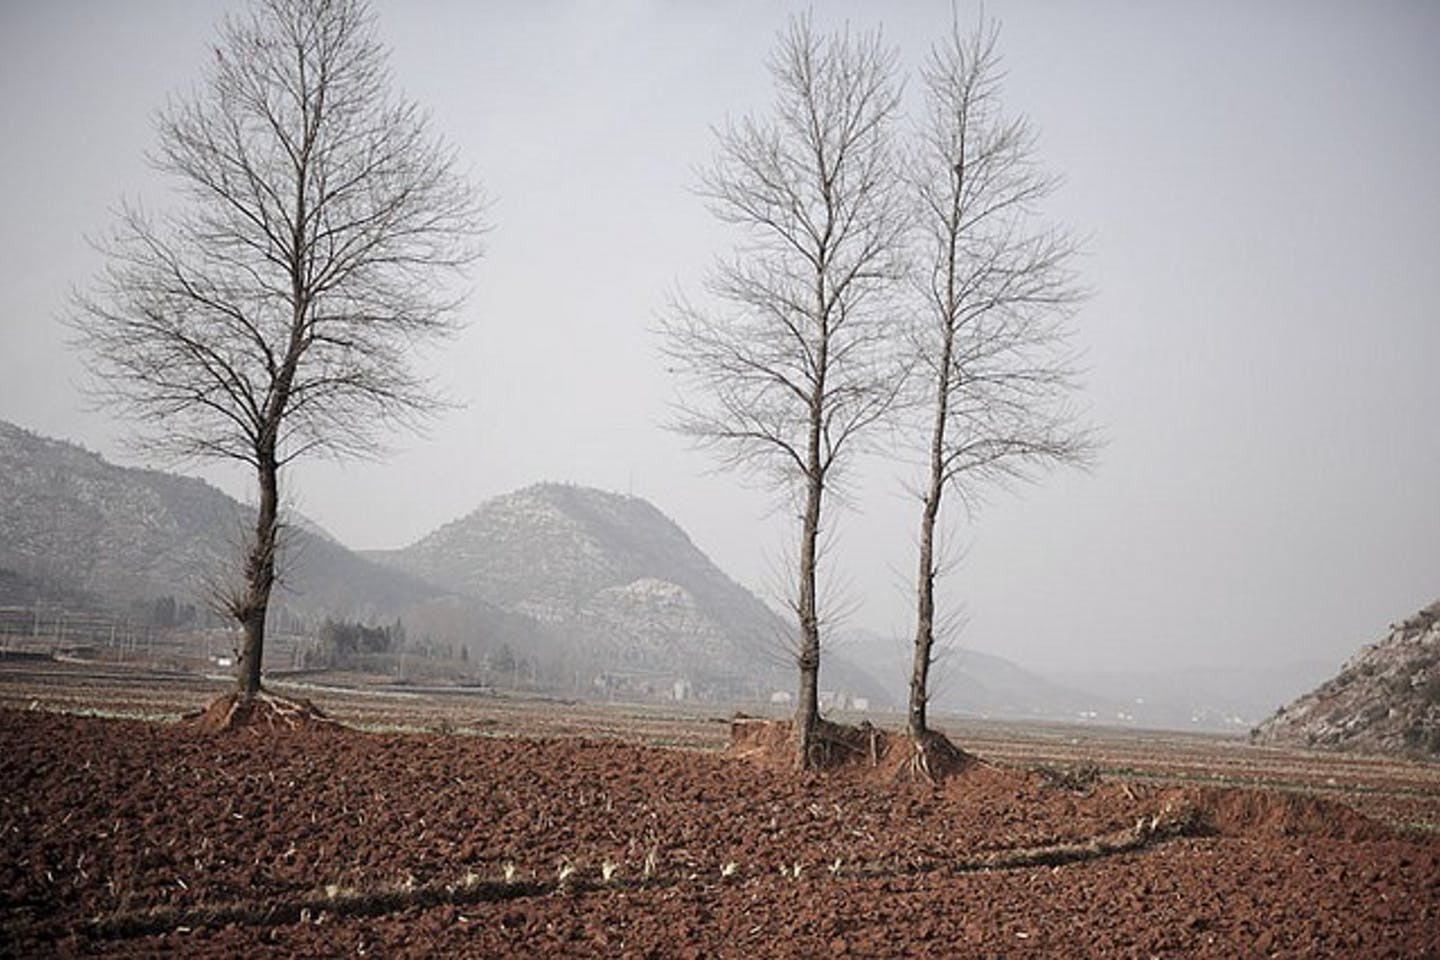 Drought in Fuyuan, China